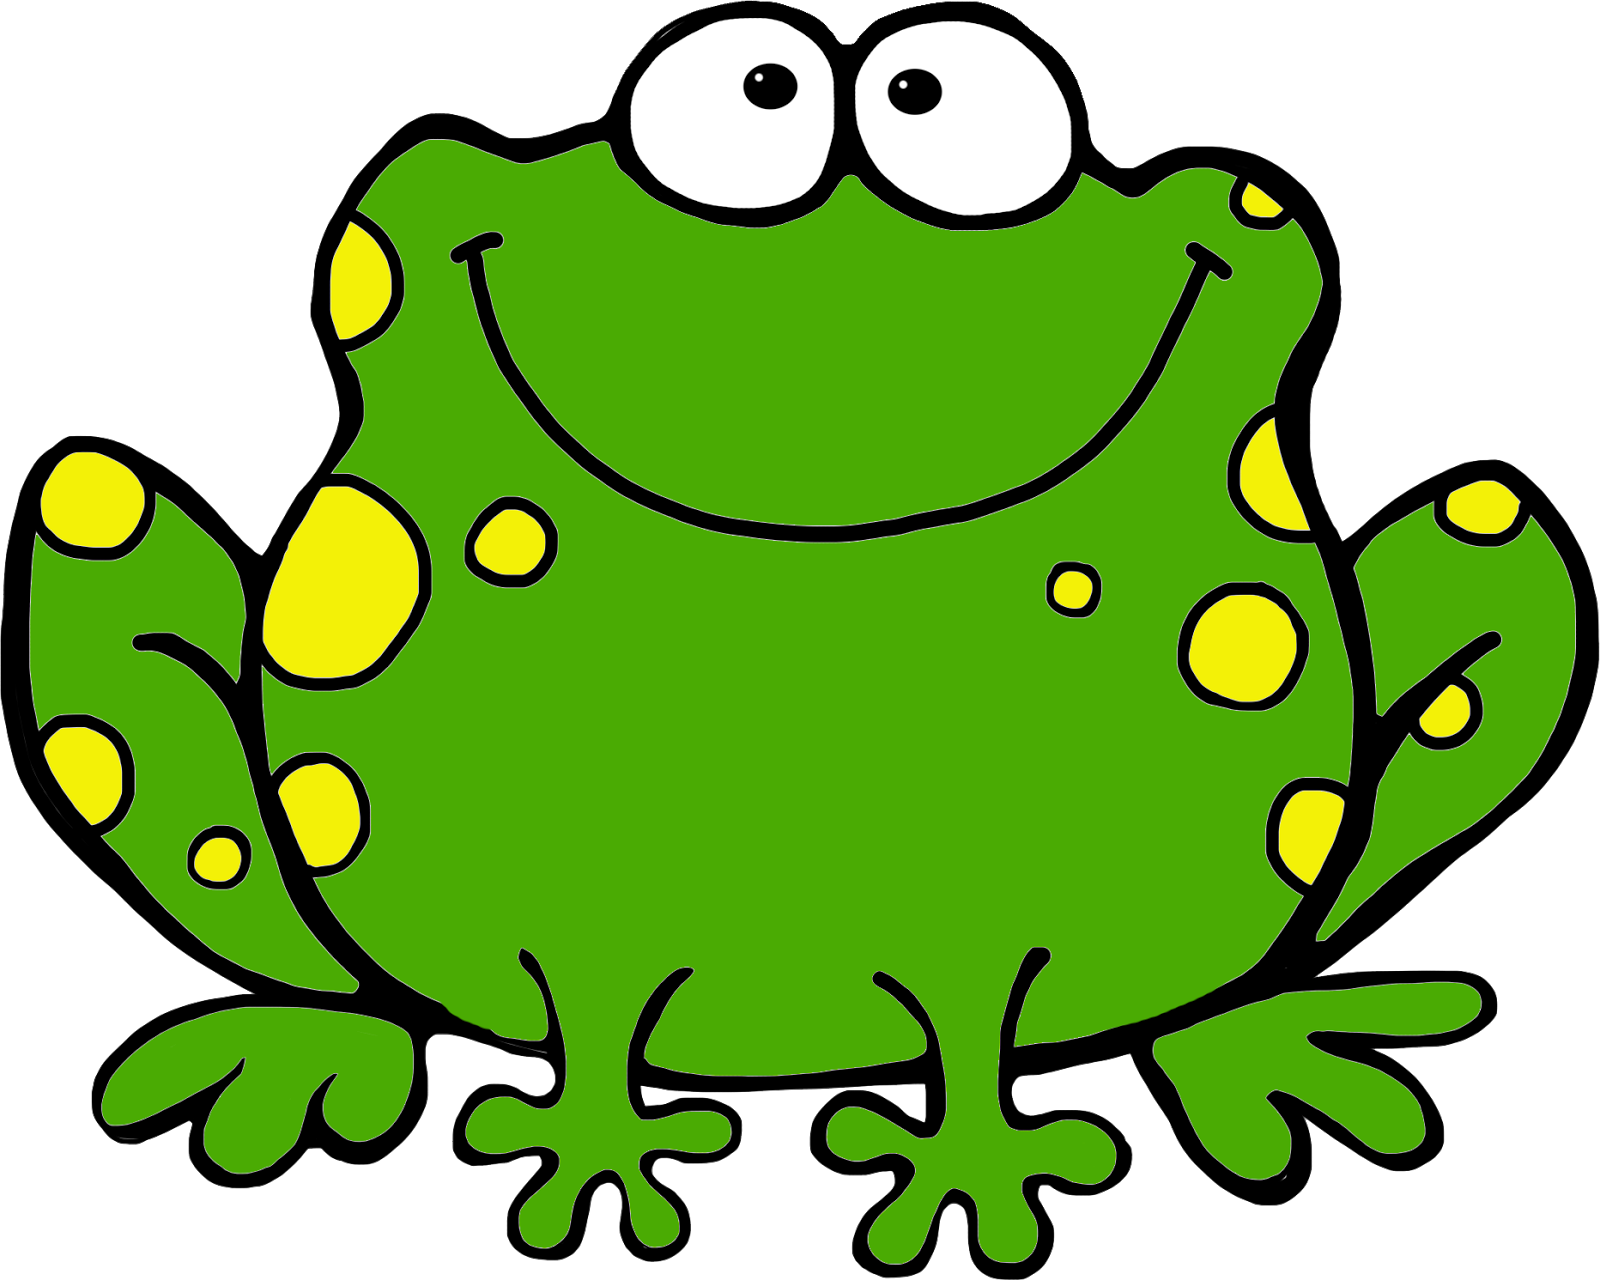 Frog Clip Art For Kids Cliparts Co-Frog Clip Art For Kids Cliparts Co-4